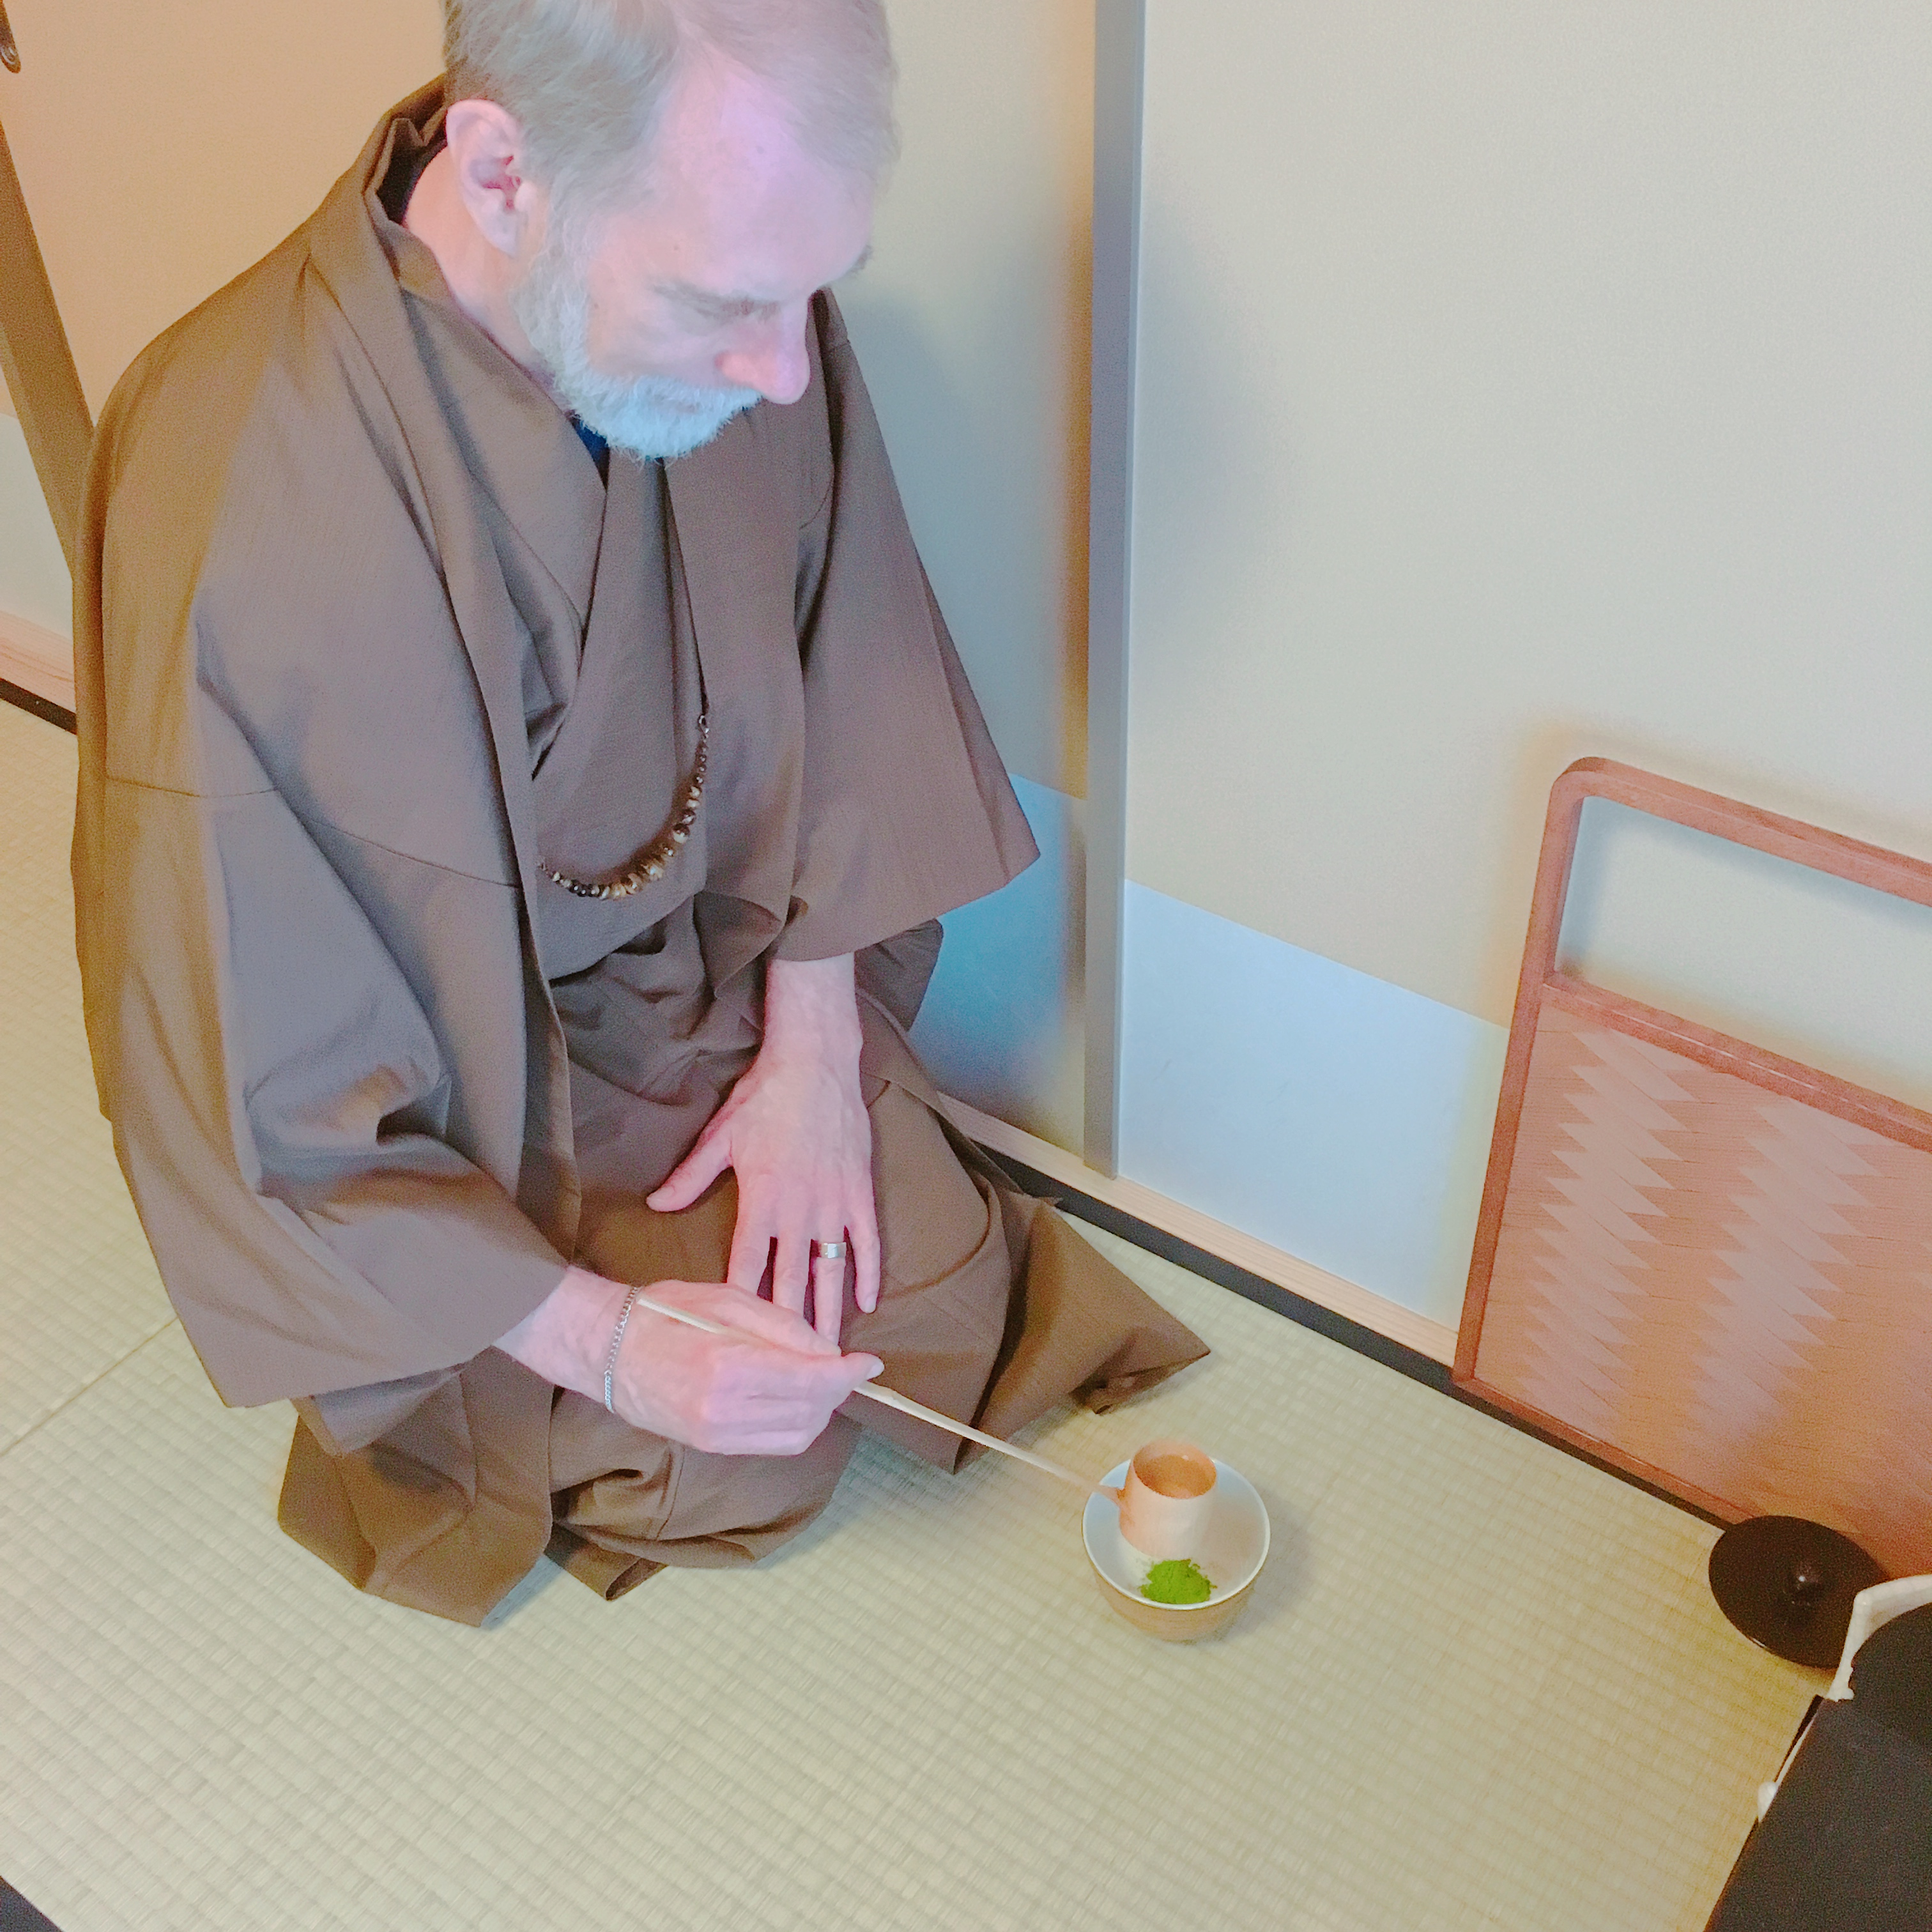 Chado(Tea Ceremony) as a Insights into History and Philosophy